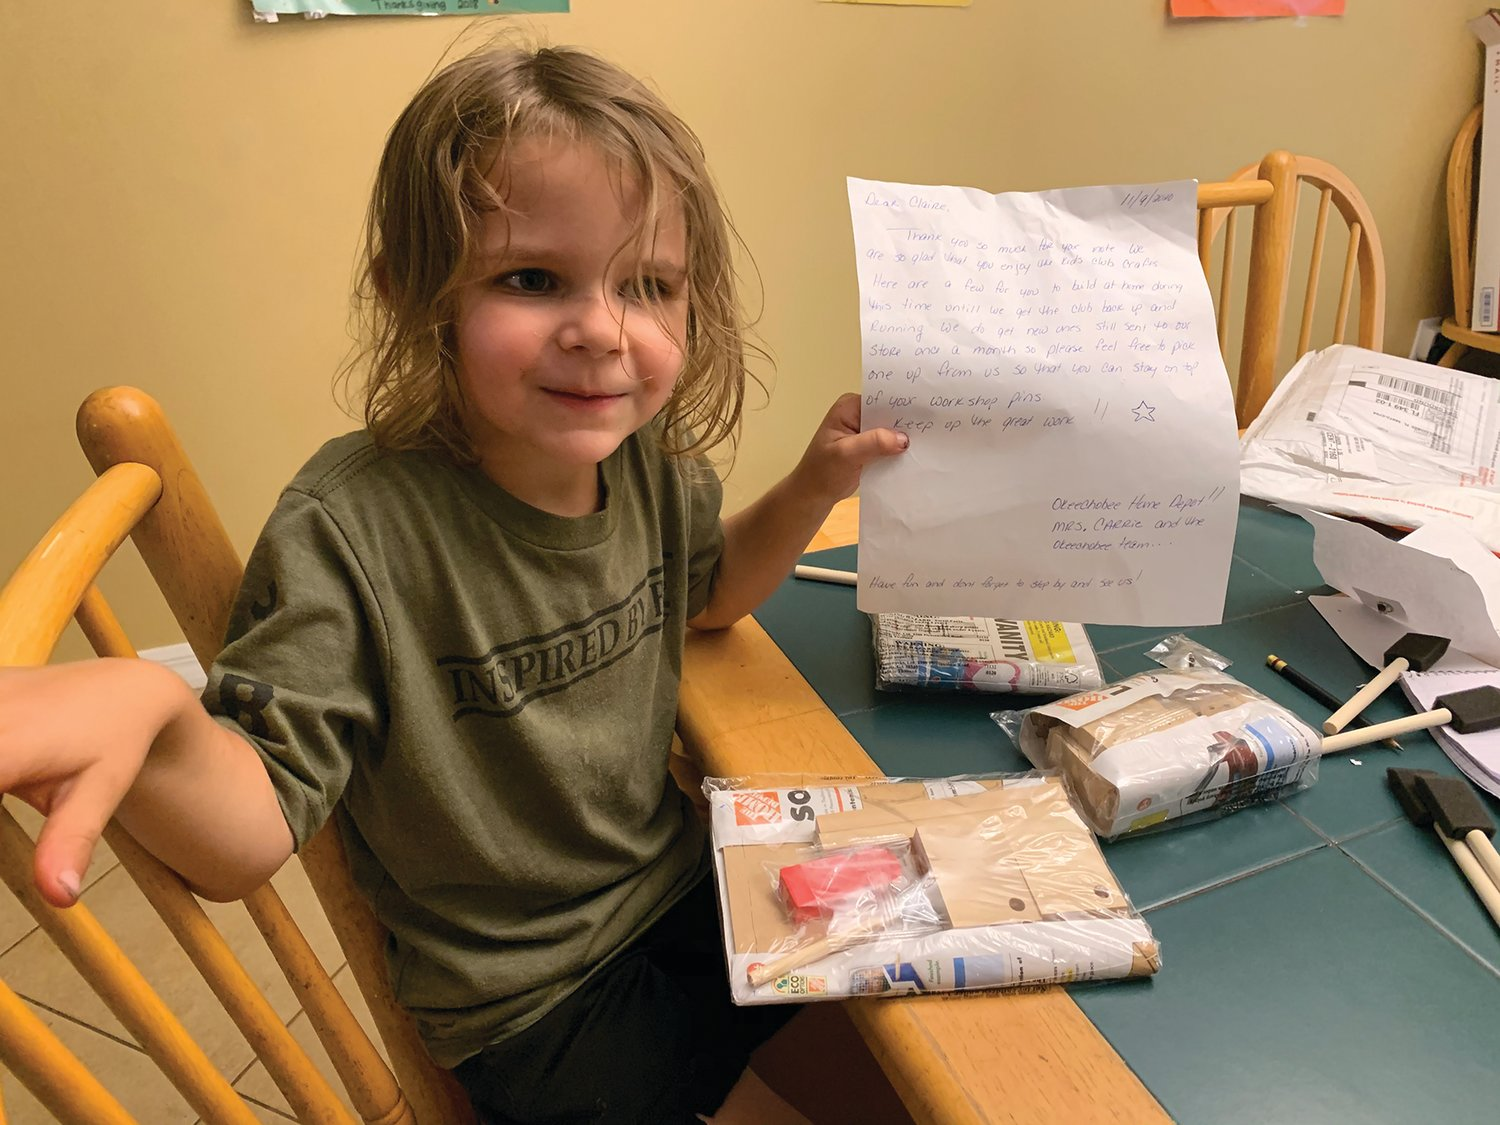 A Rock Solid Kindergarten student receives a package from Home Depot after writing to tell them she misses craft day.